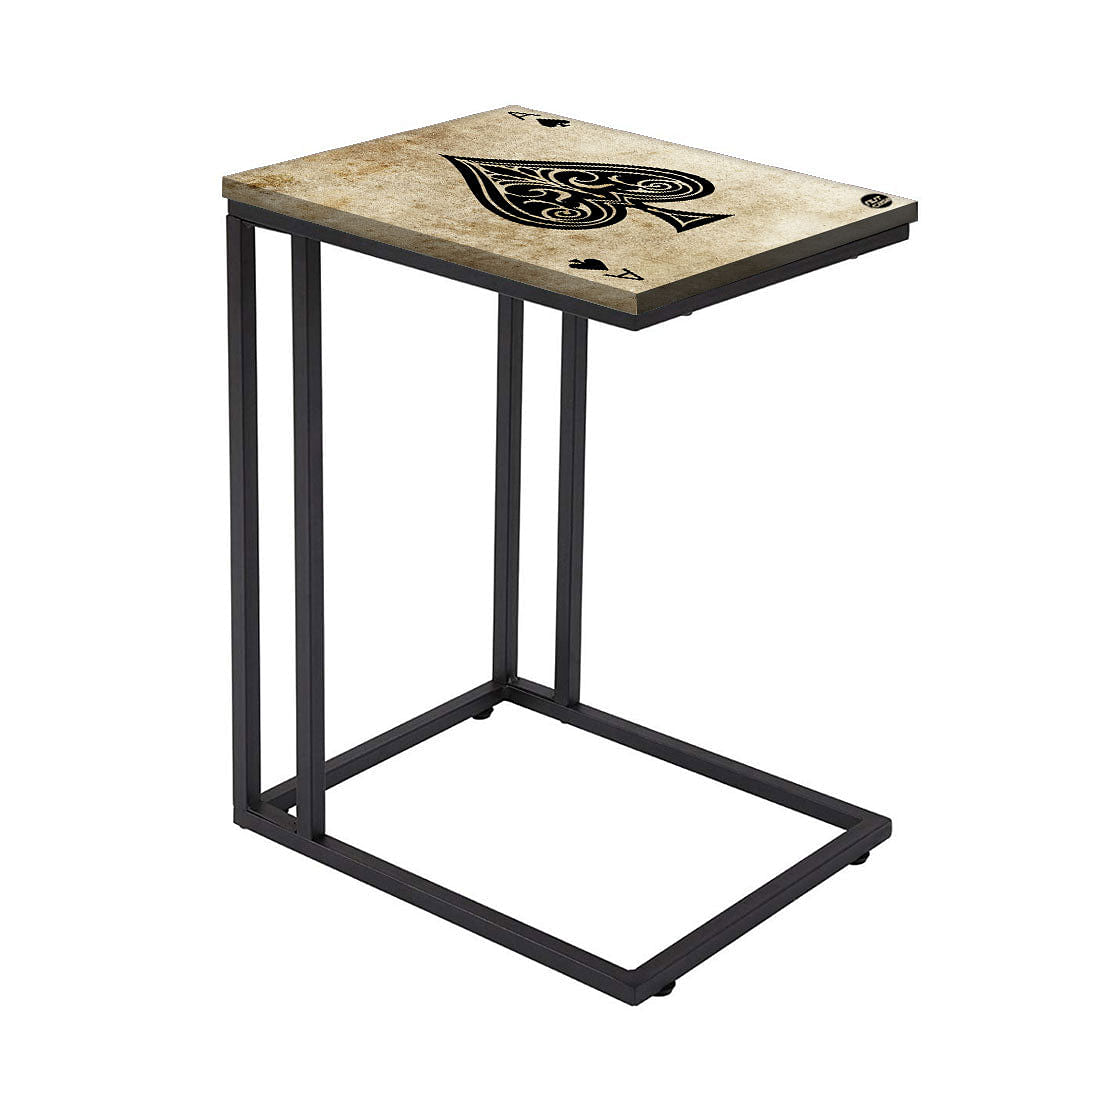 Black C Shaped Table For Sofa